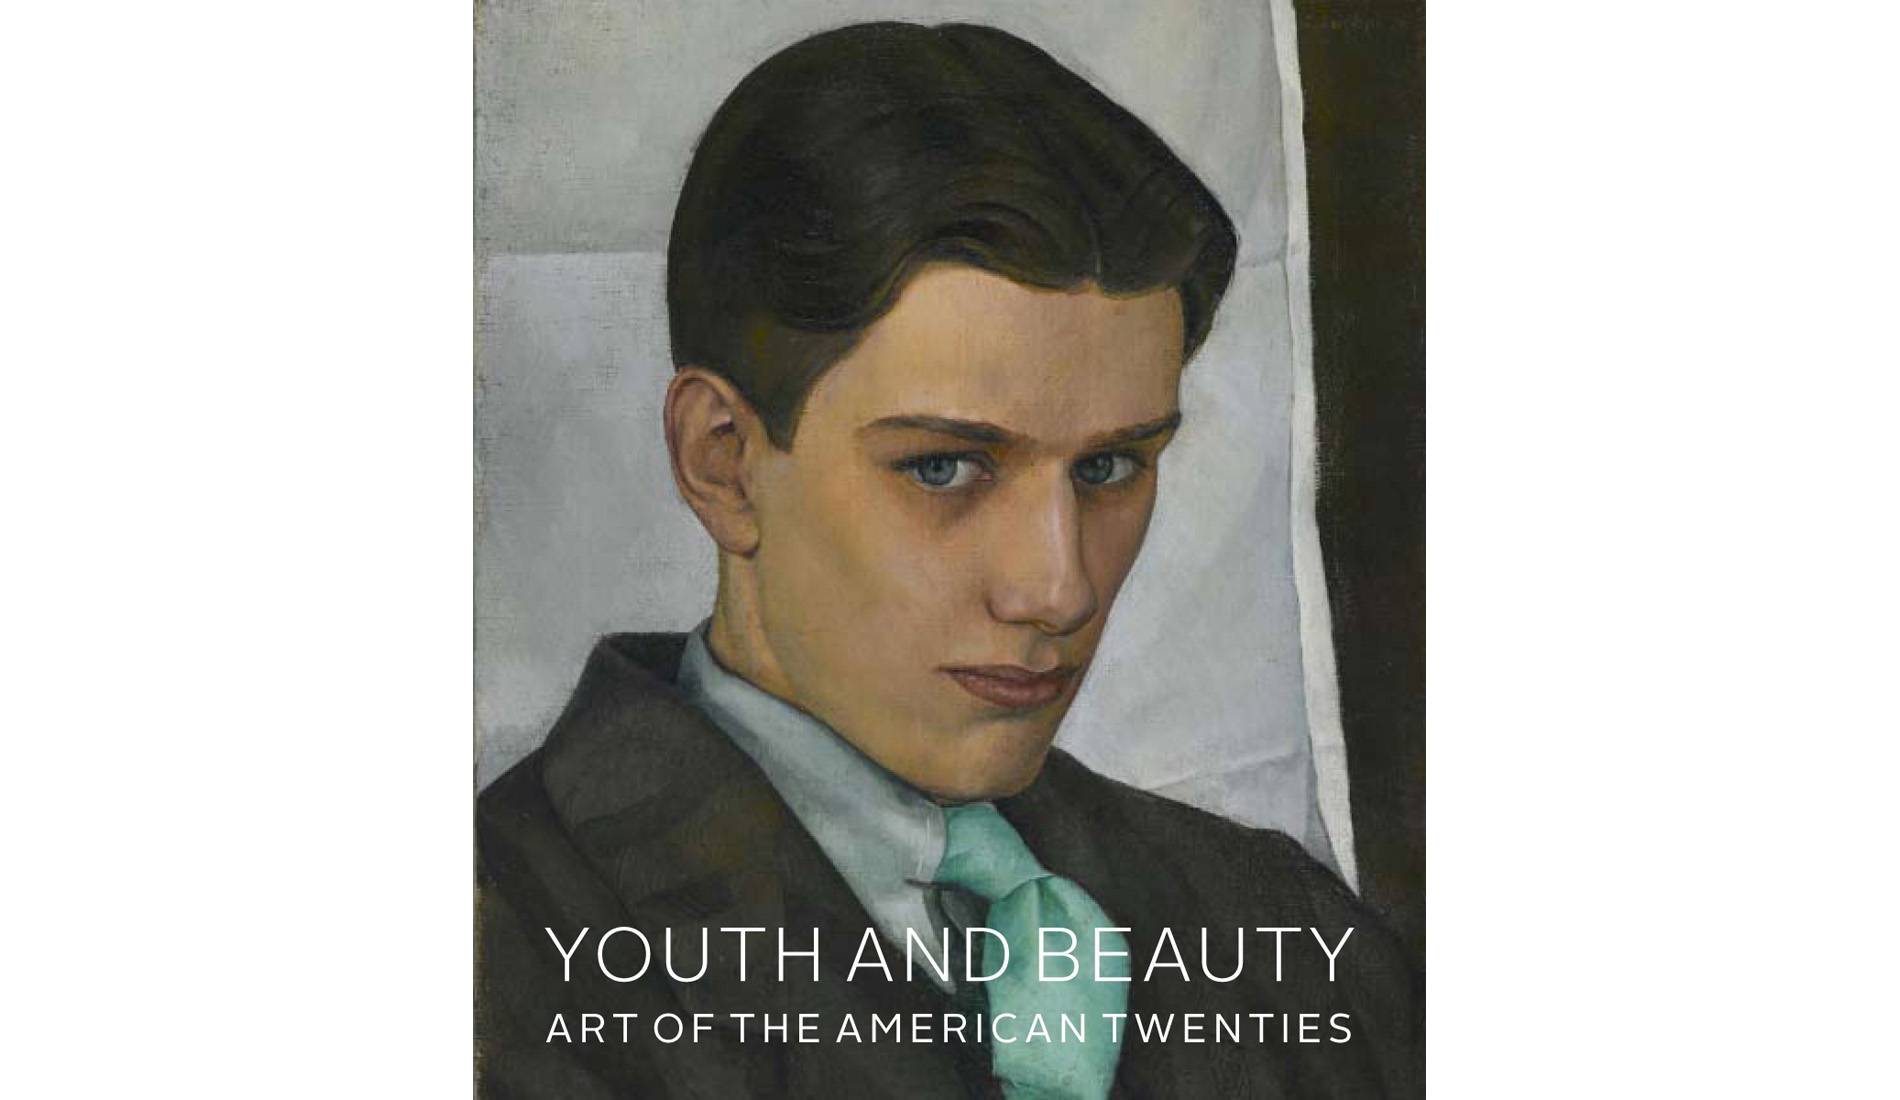 youth&beautycoverF.jpg